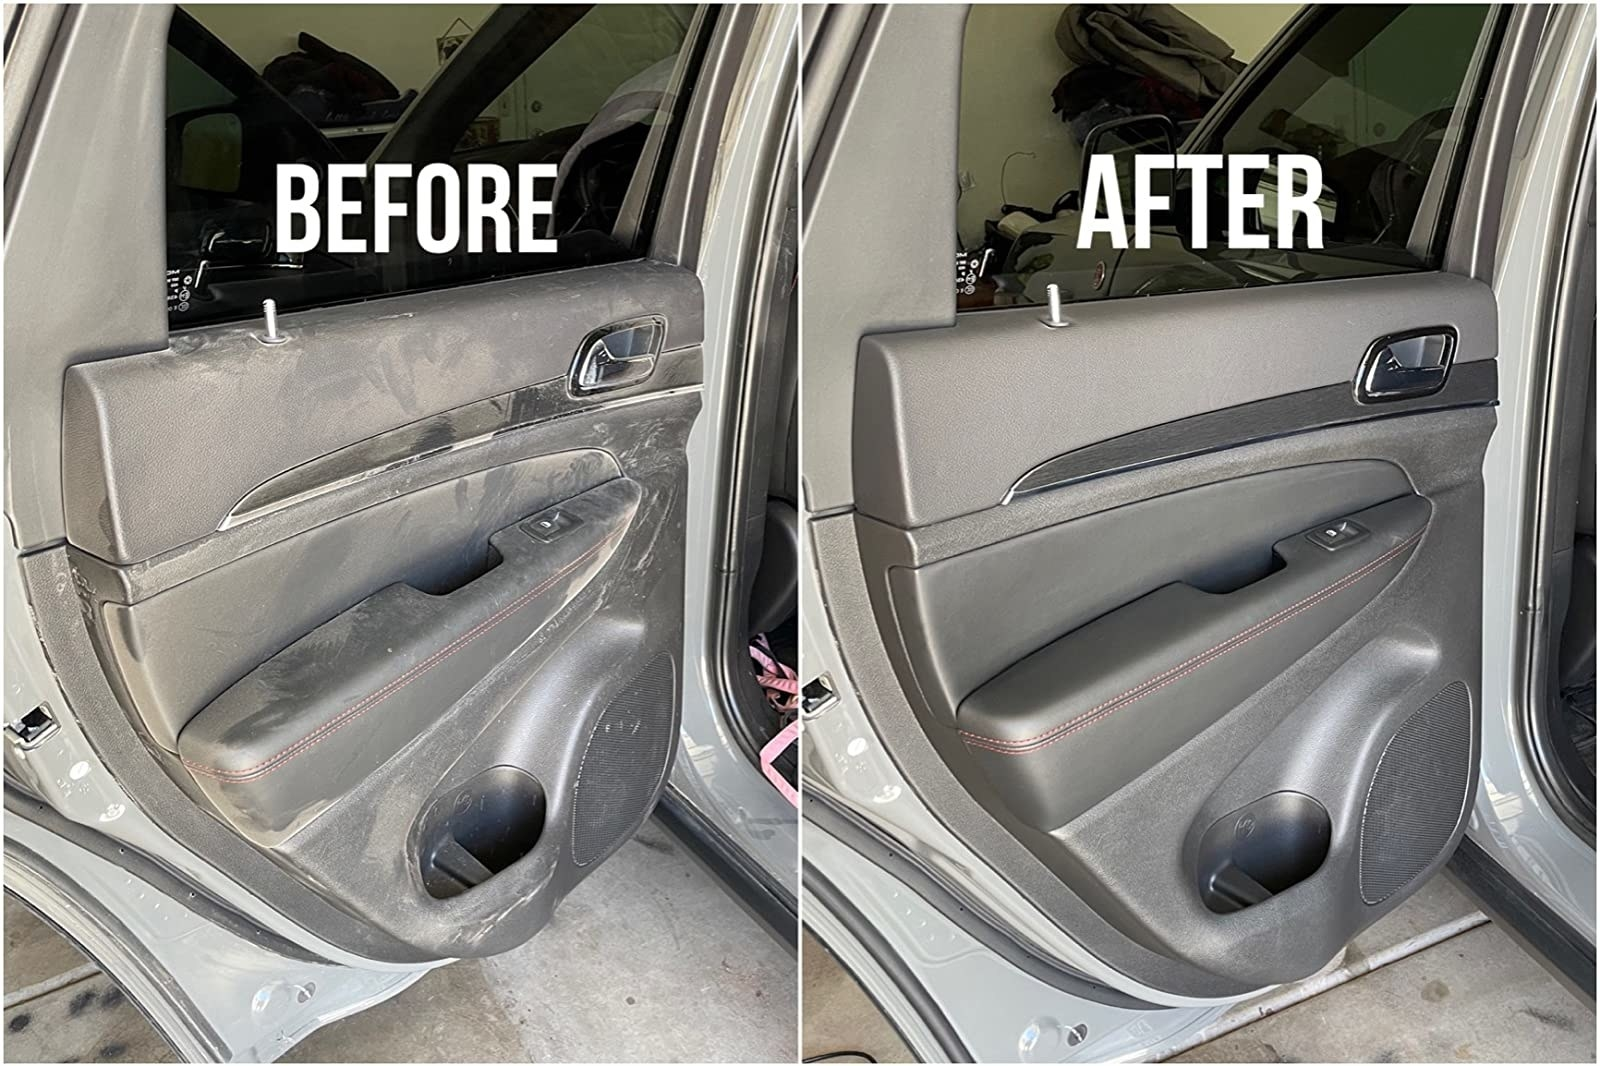 Reviewer's before-and-after results of using interior cleaner